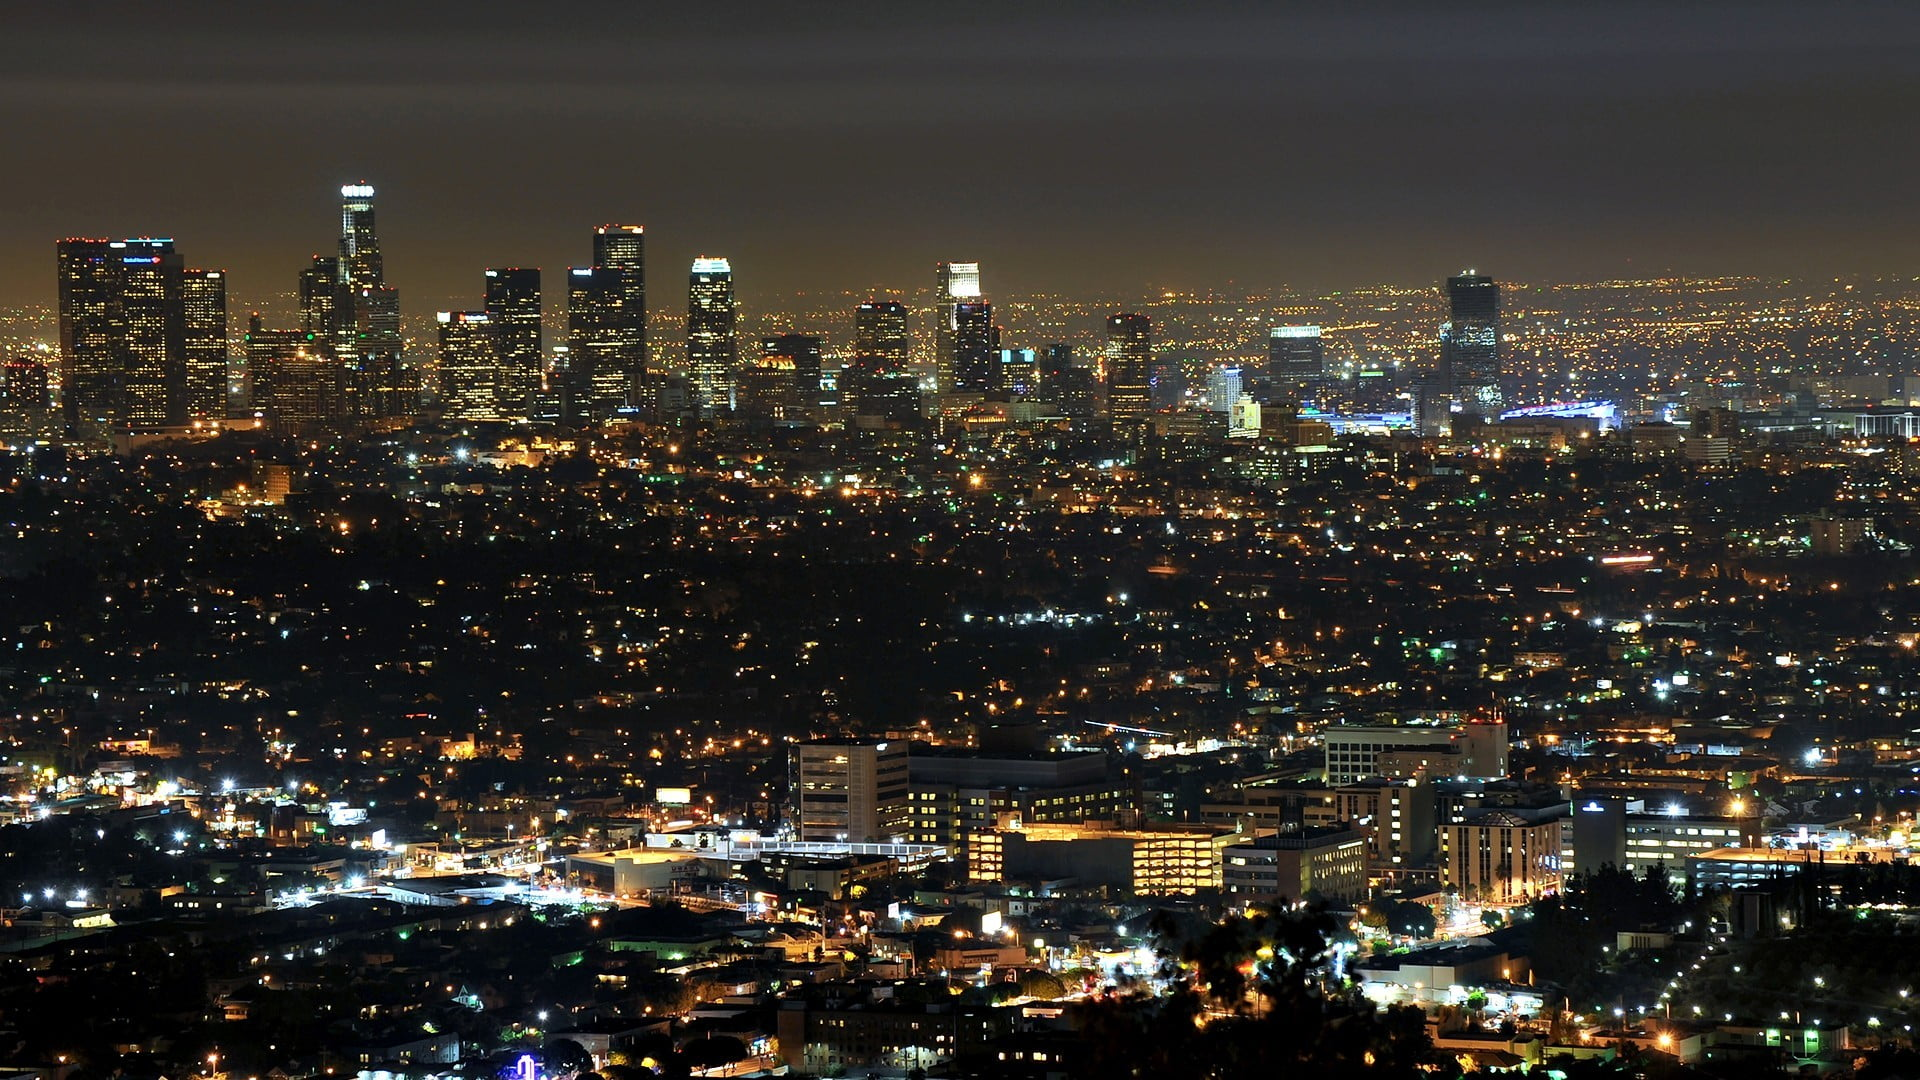 Los Angeles , HD Wallpaper & Backgrounds